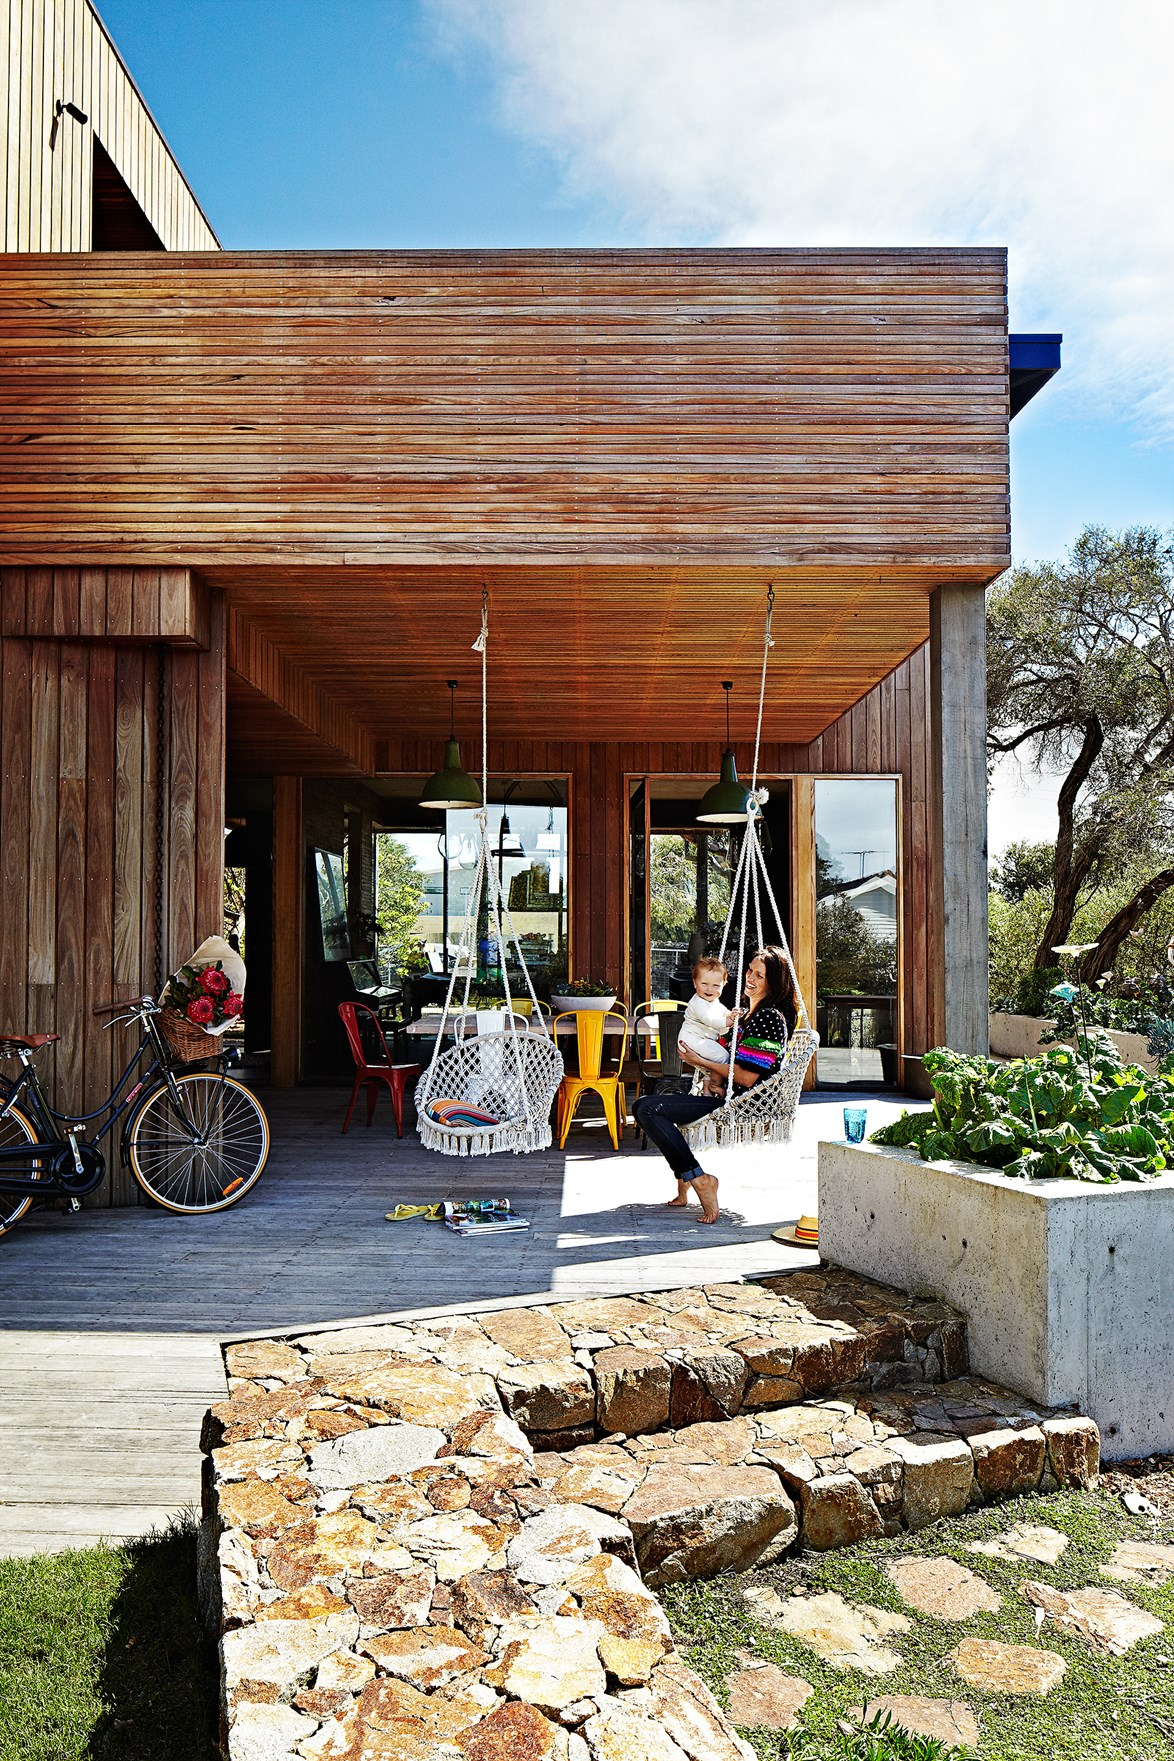 """The now vibrant and colourful home of [Kip & Co founder Kate Heppell](https://www.homestolove.com.au/the-home-of-kip-and-co-co-owner-kate-heppell-3596